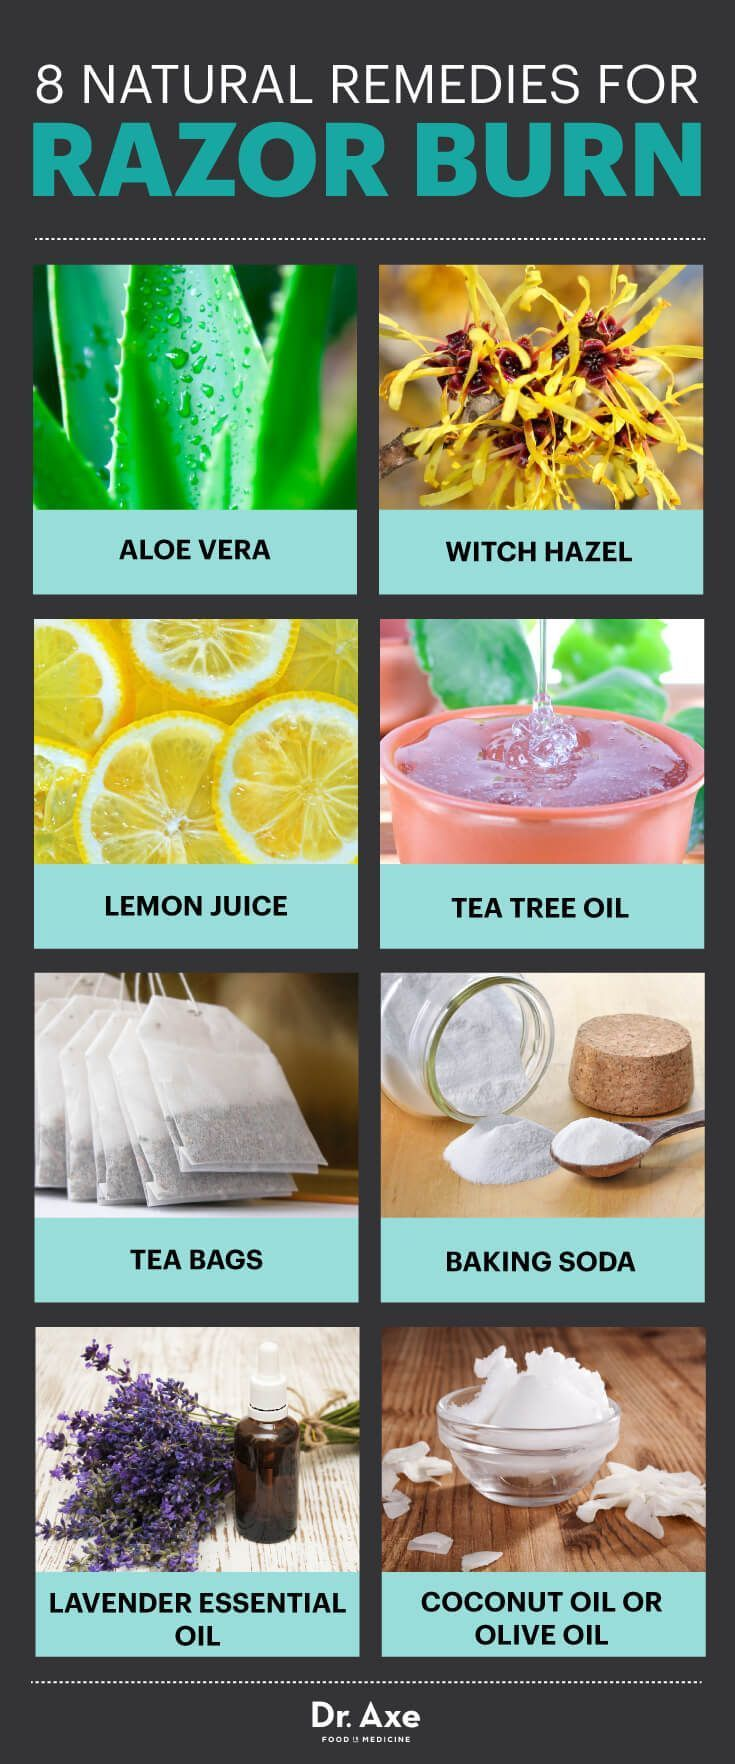 Razor burn remedies - Dr. Axe http://www.draxe.com #health #Holistic #natural